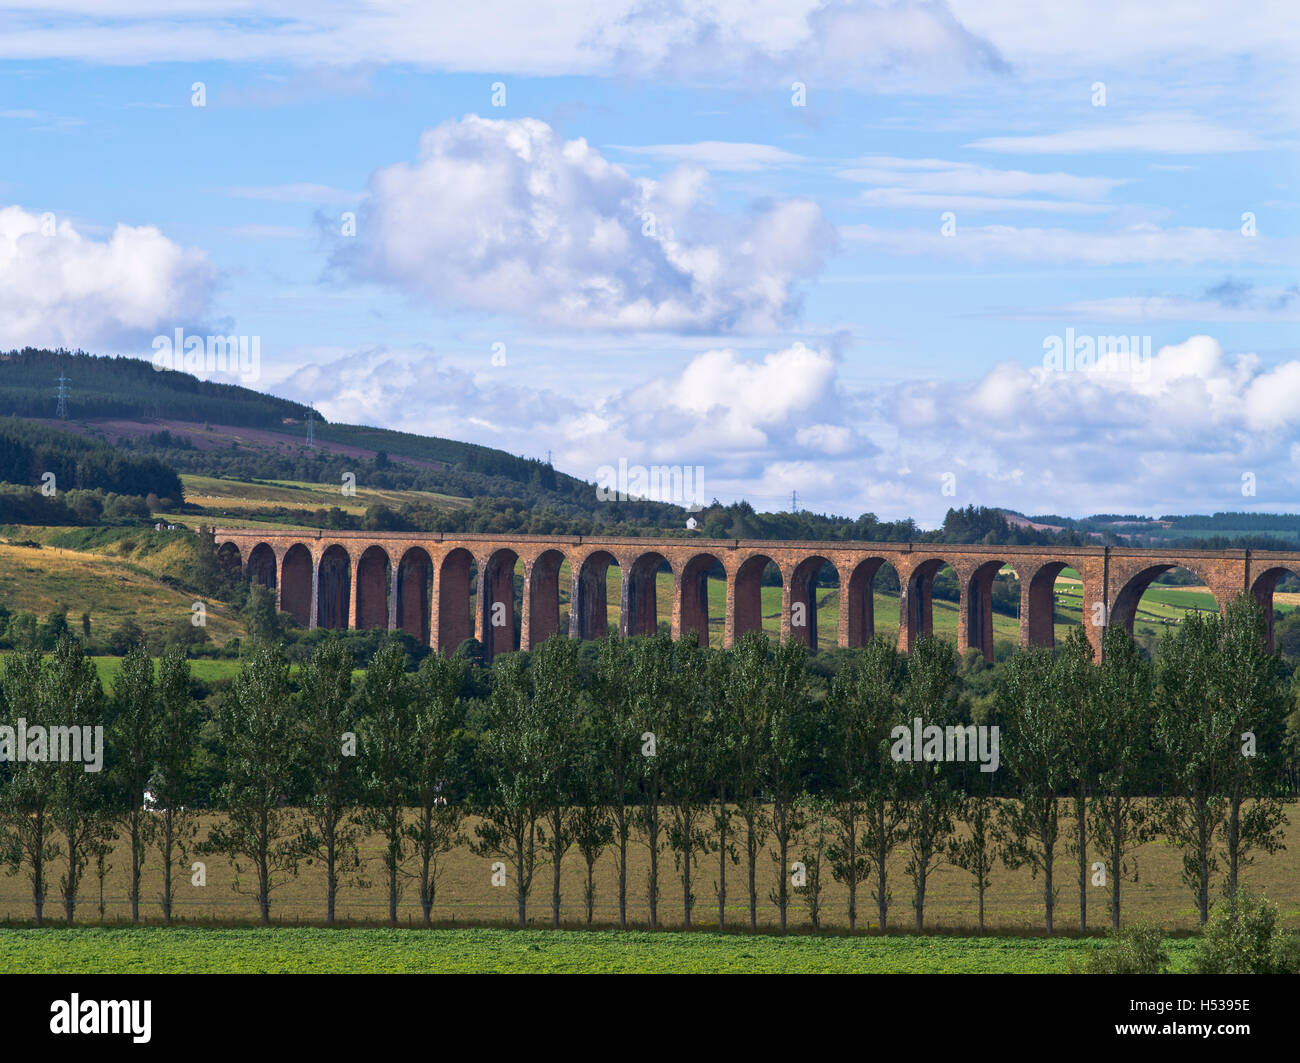 dh Nairn Railway Viaduct NAIRN VALLEY INVERNESS SHIRE culloden moor viaduct spanning the river nairn valley uk scotland - Stock Image